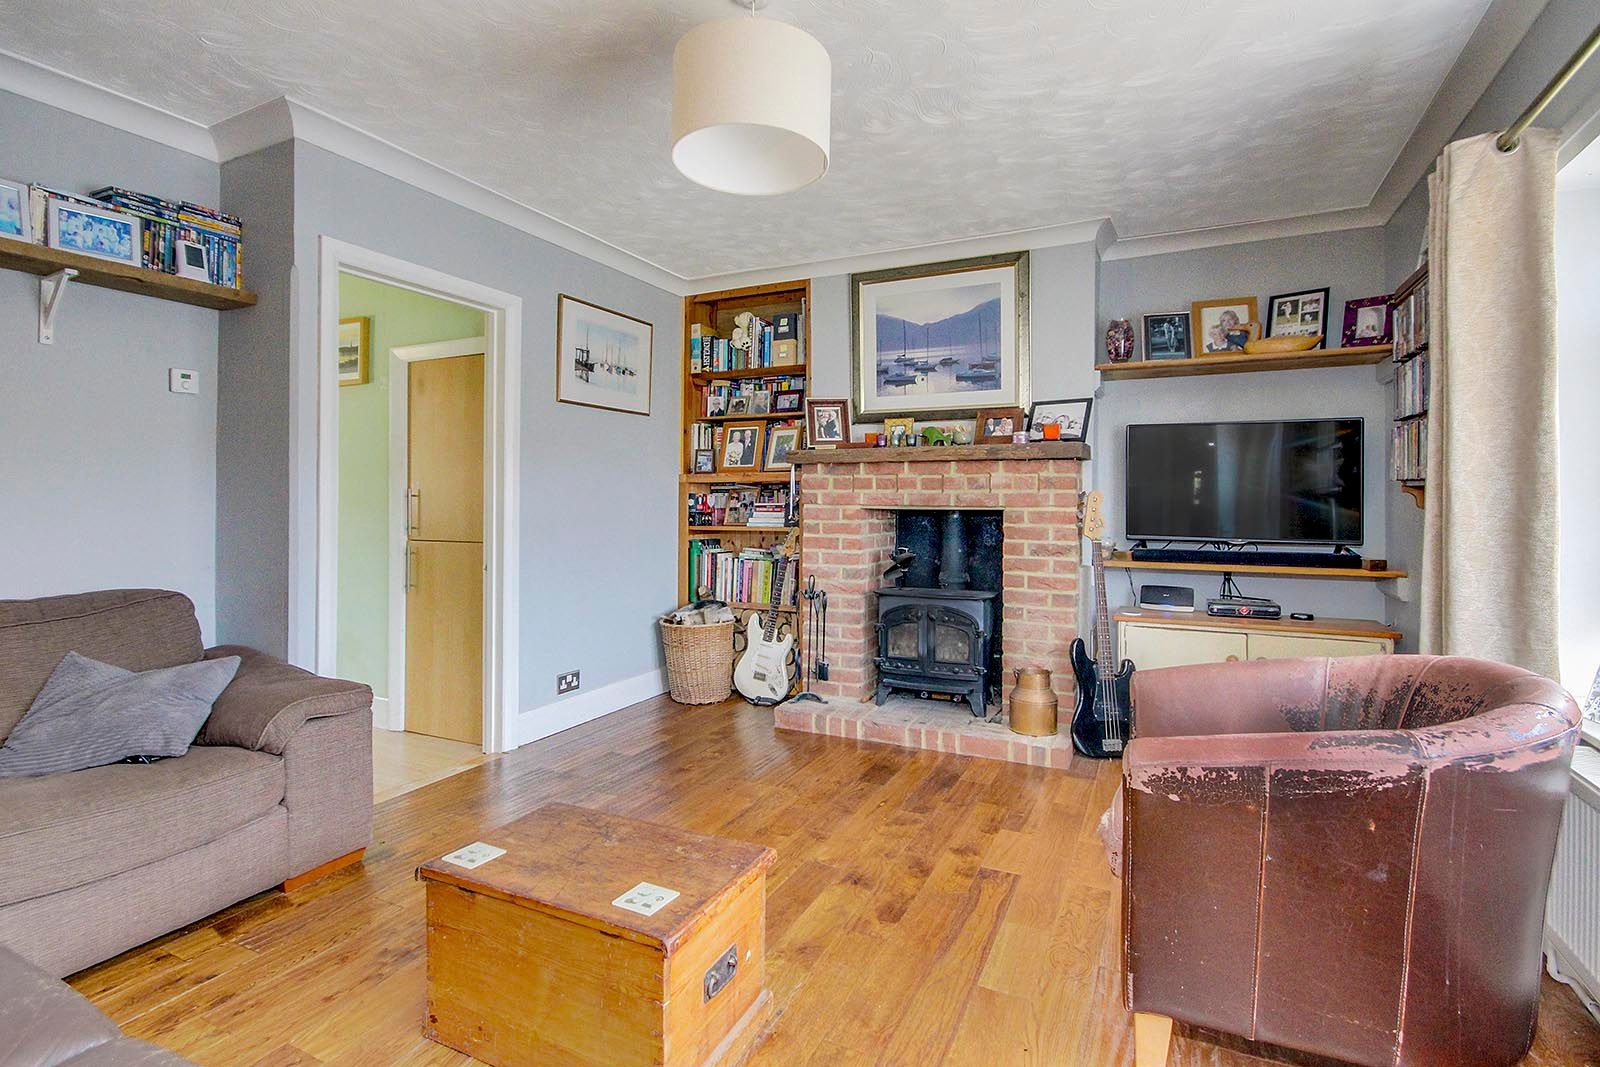 3 bed house for sale in Clapham Common  - Property Image 2